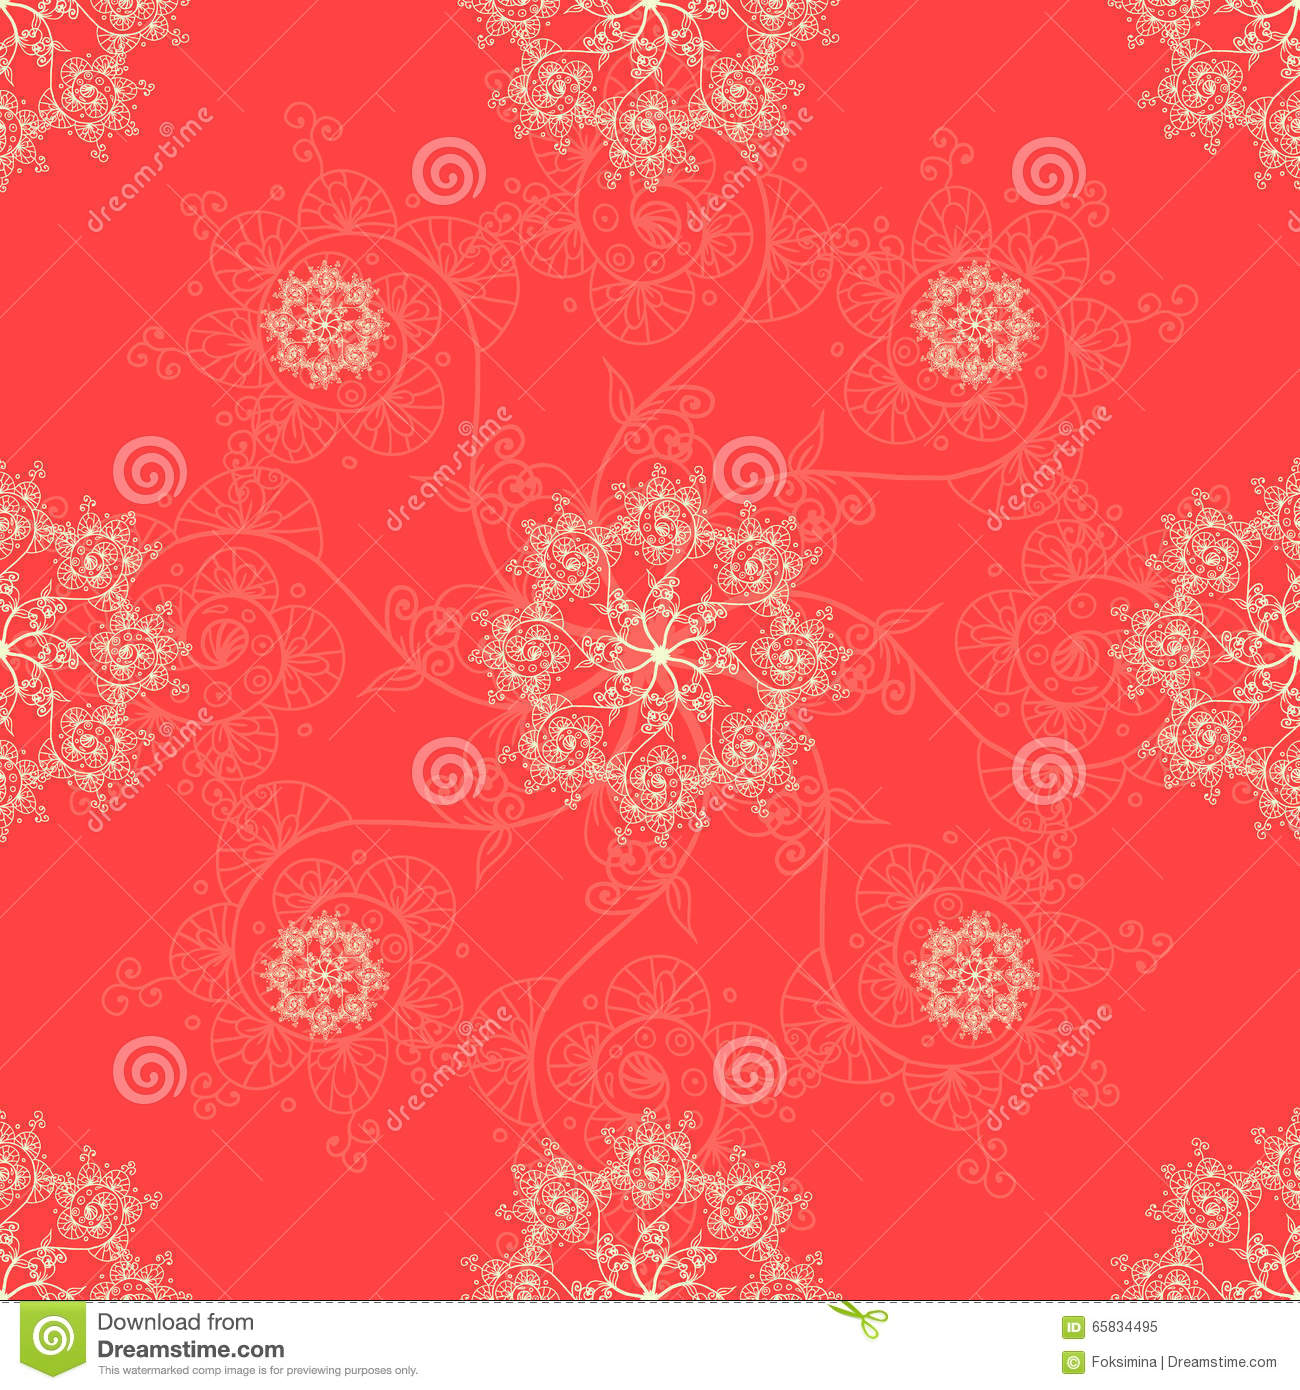 Abstract Beauty Christmas Invitation Background Vector